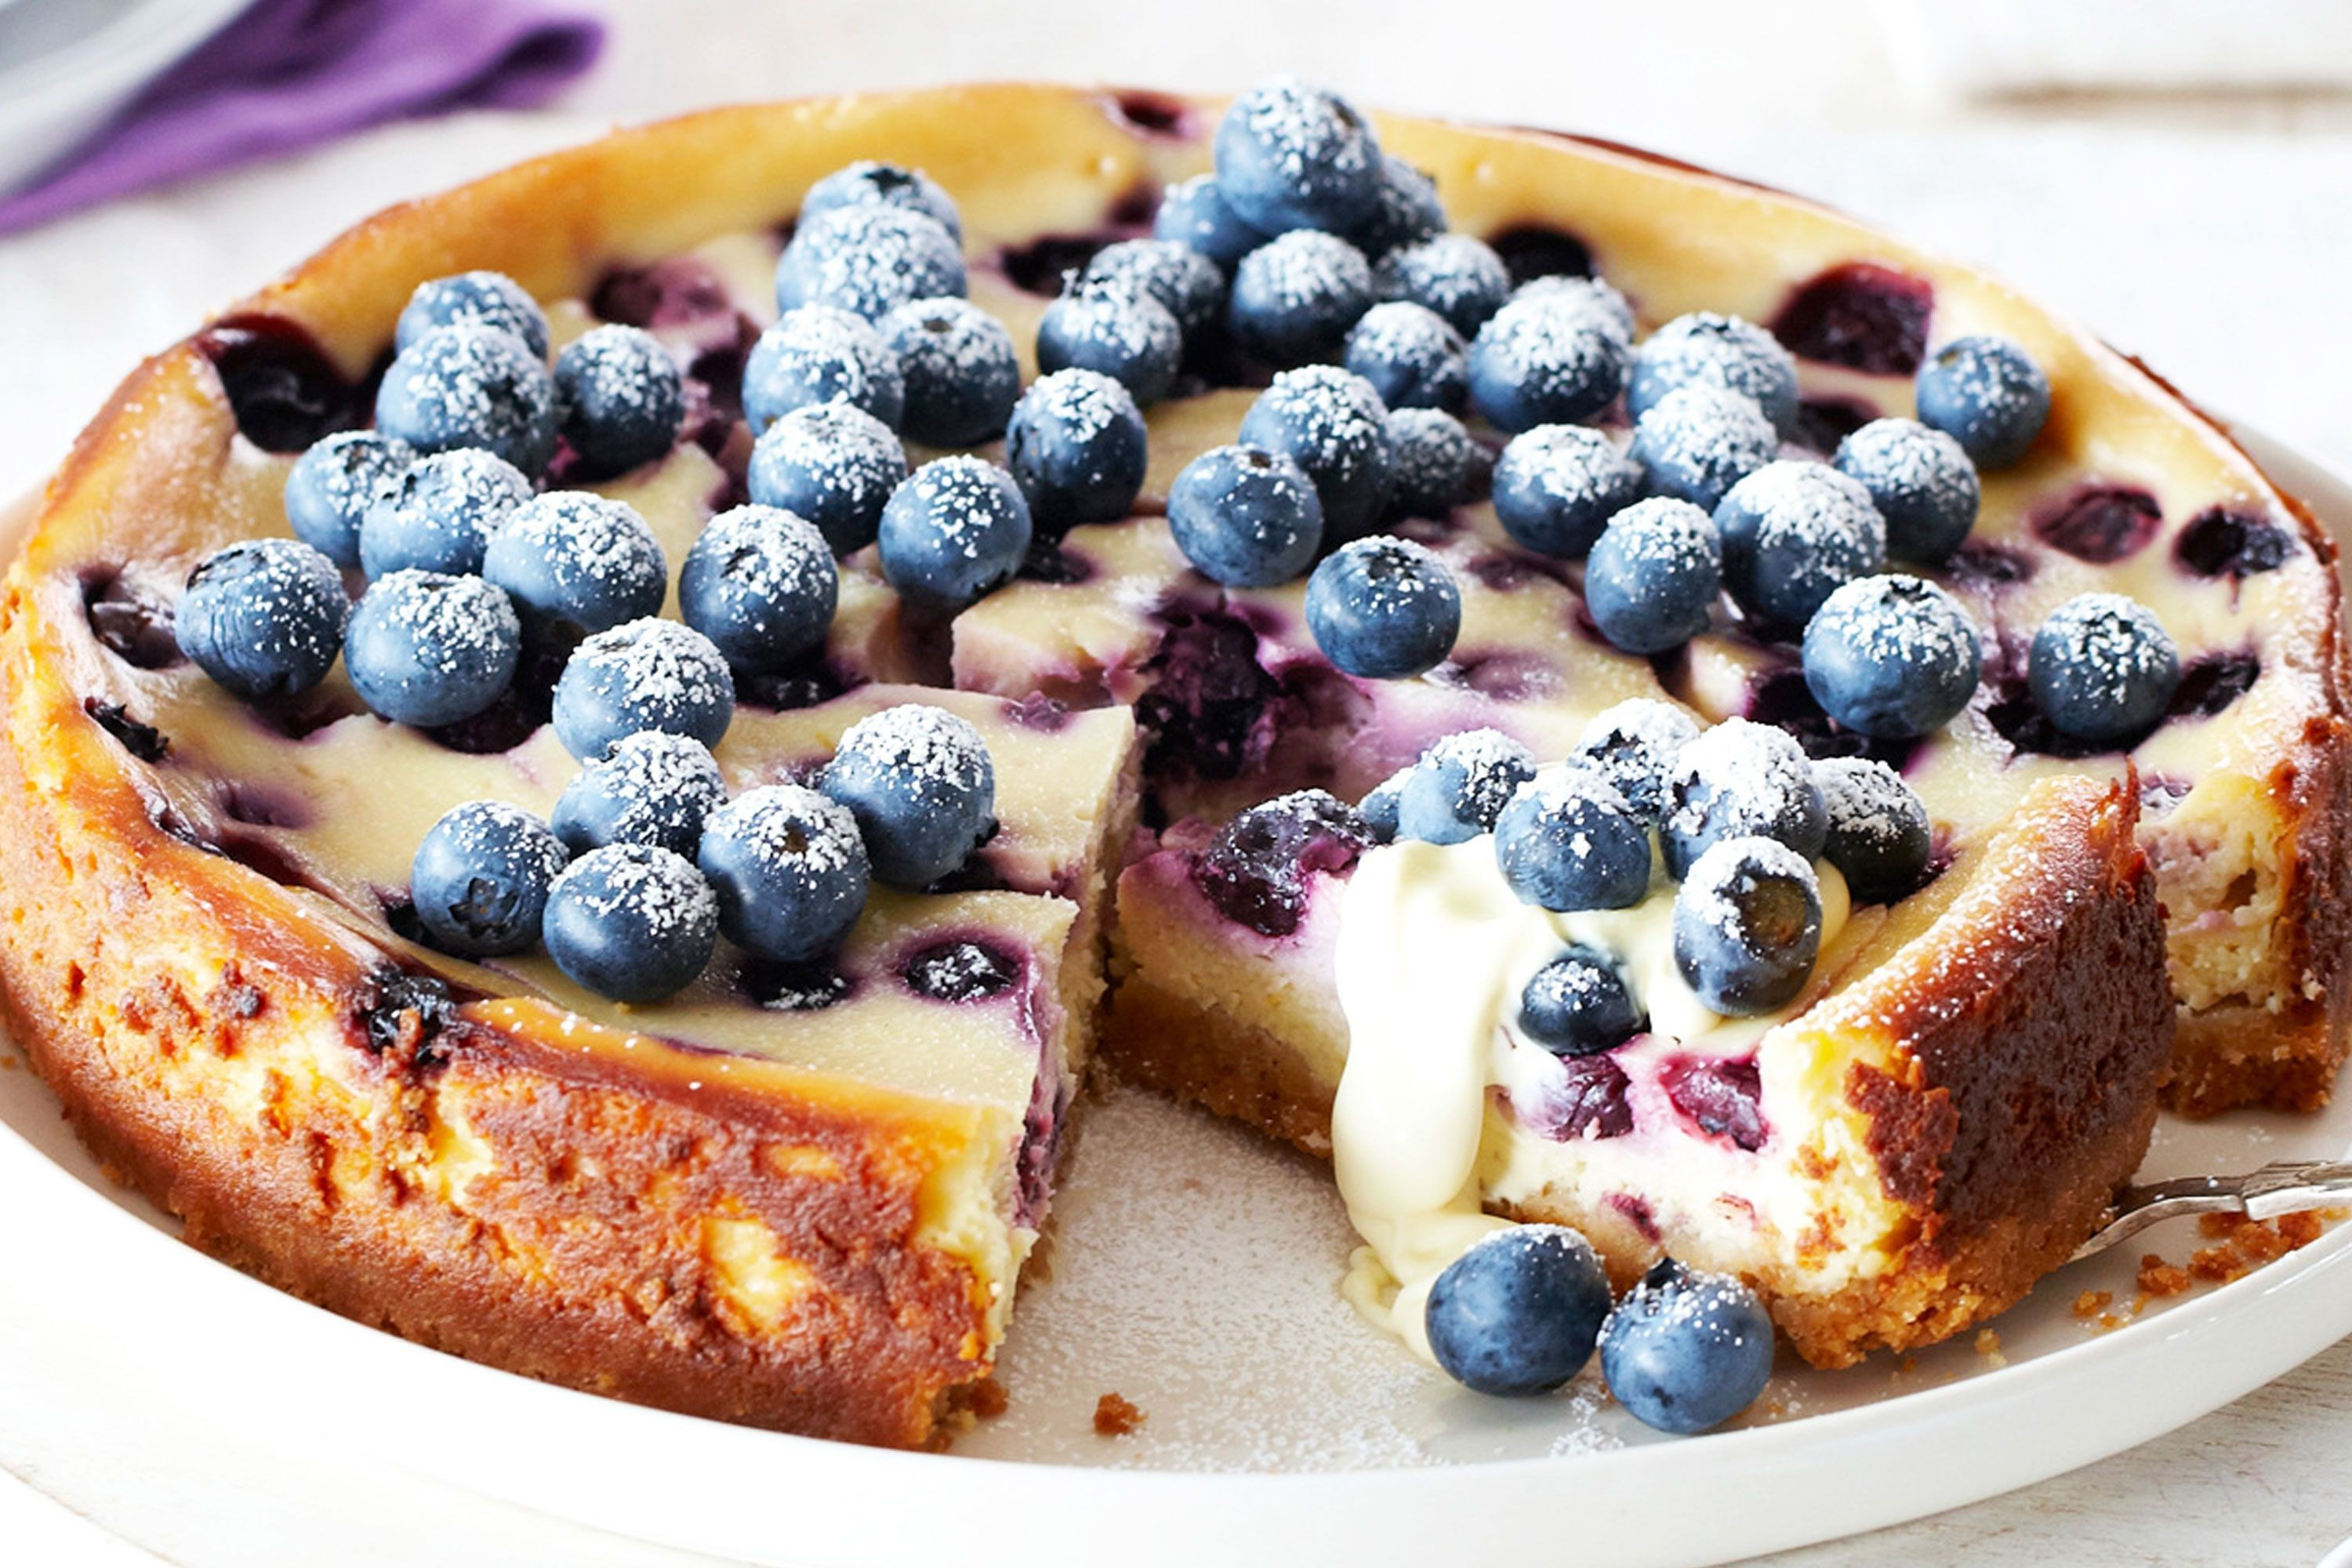 Baked Lemon Cheesecake with Blueberries Recipe